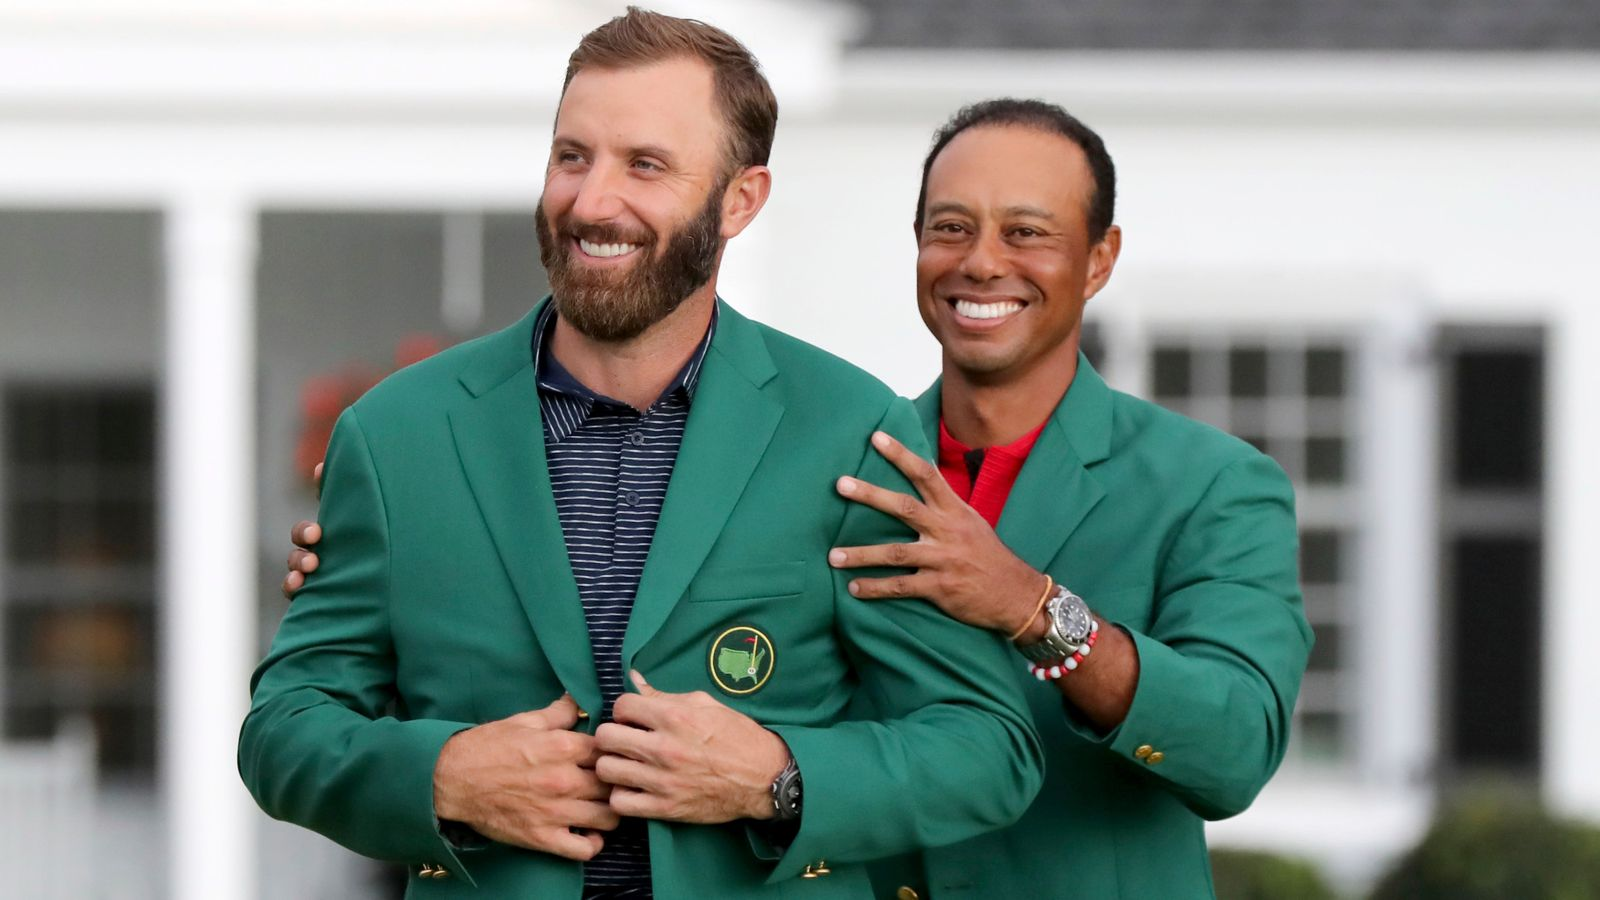 When is The Masters on